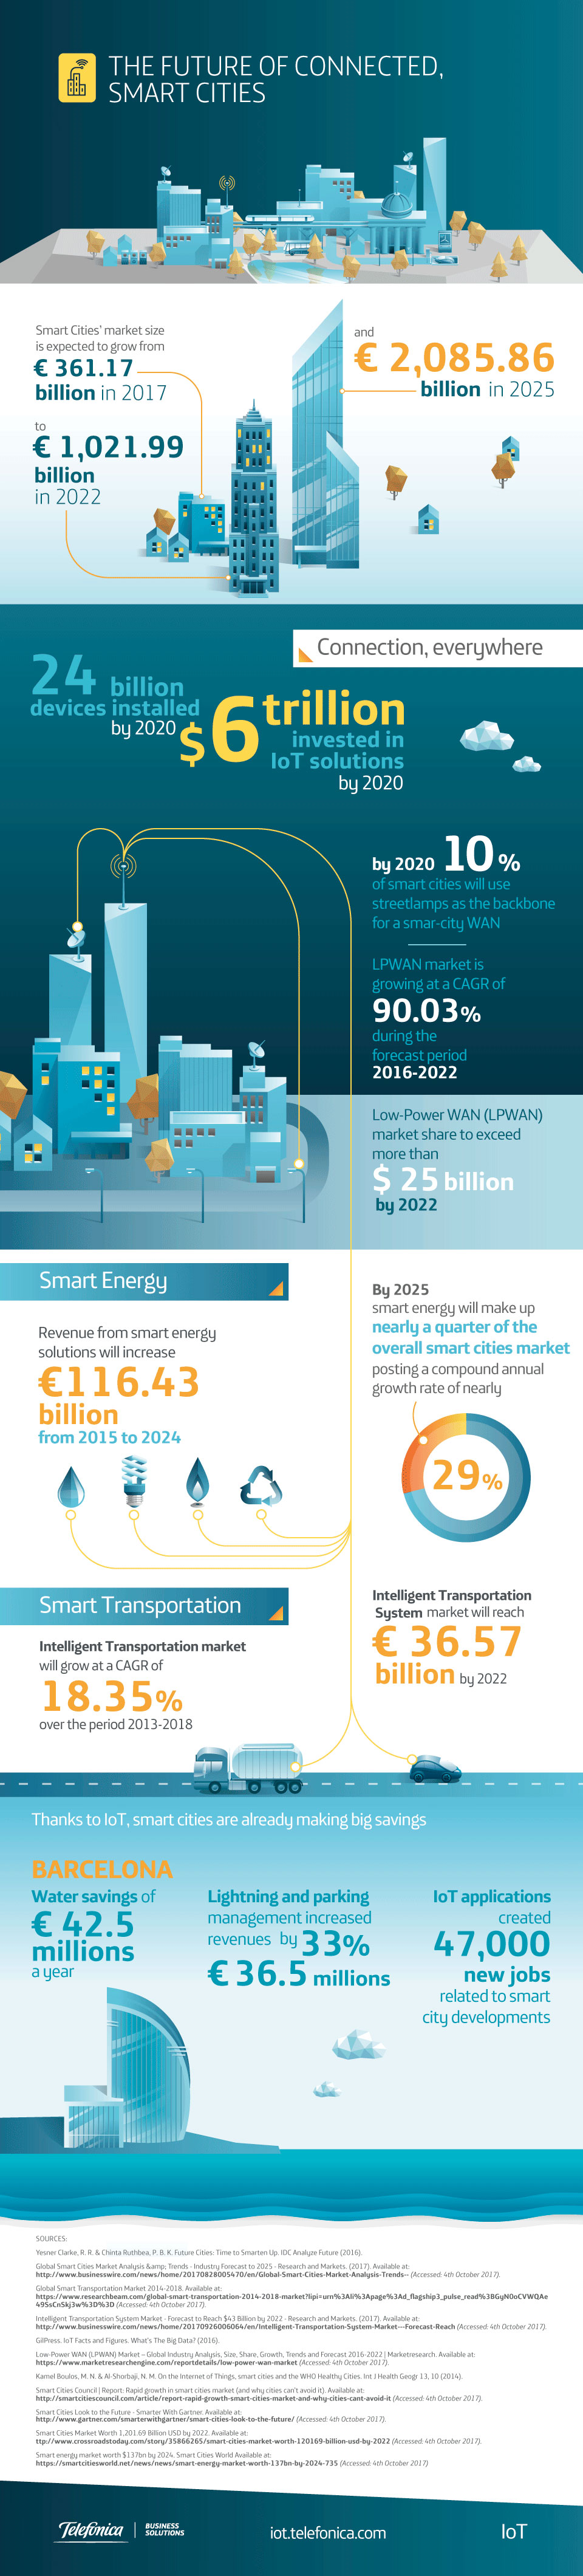 Read Today: Th Future of Connected Smart Cities [Infographic]